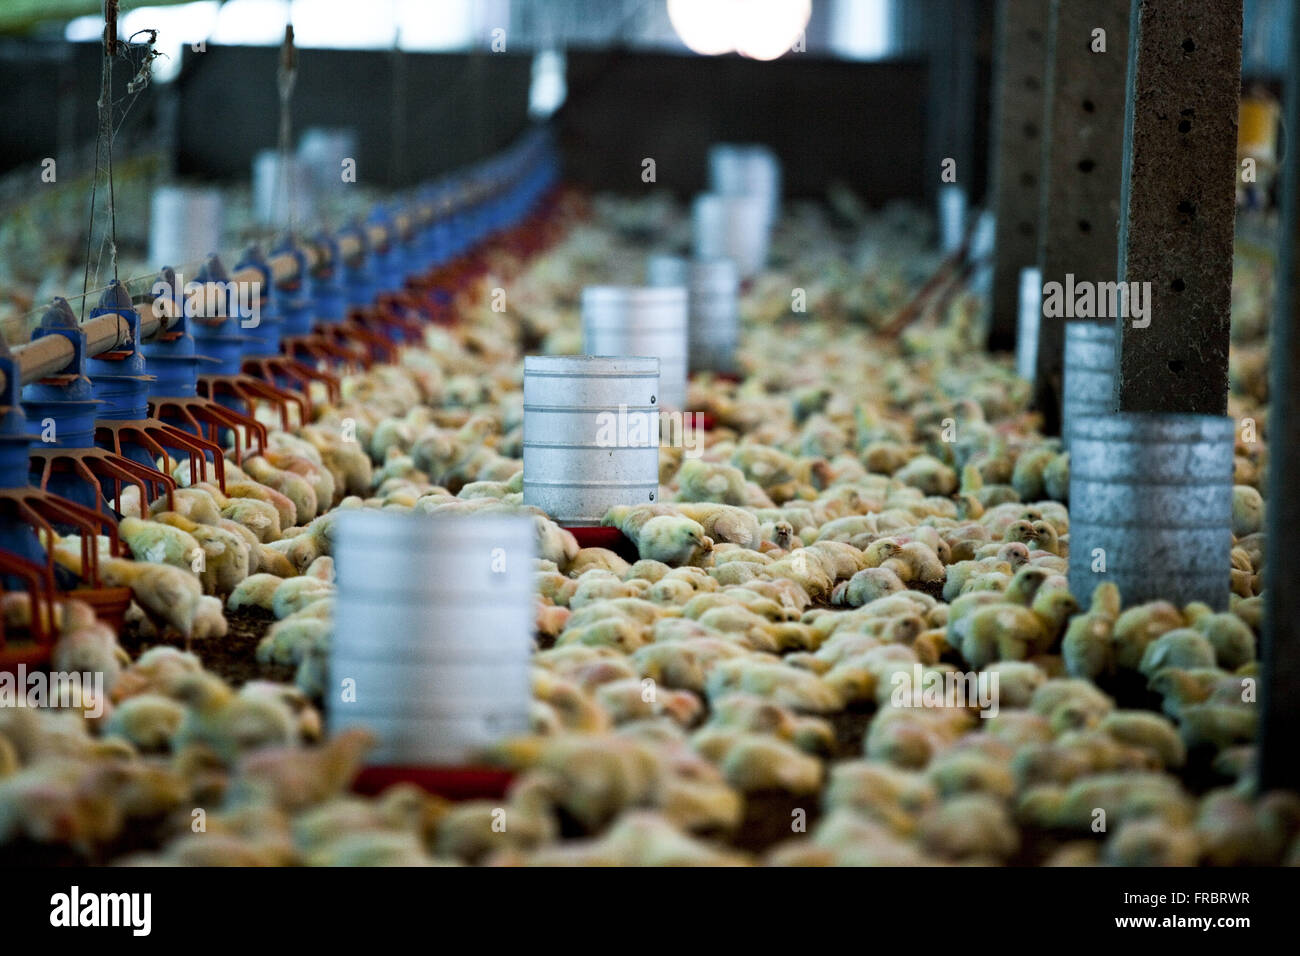 Poultry farming - raising poultry for slaughter - Stock Image